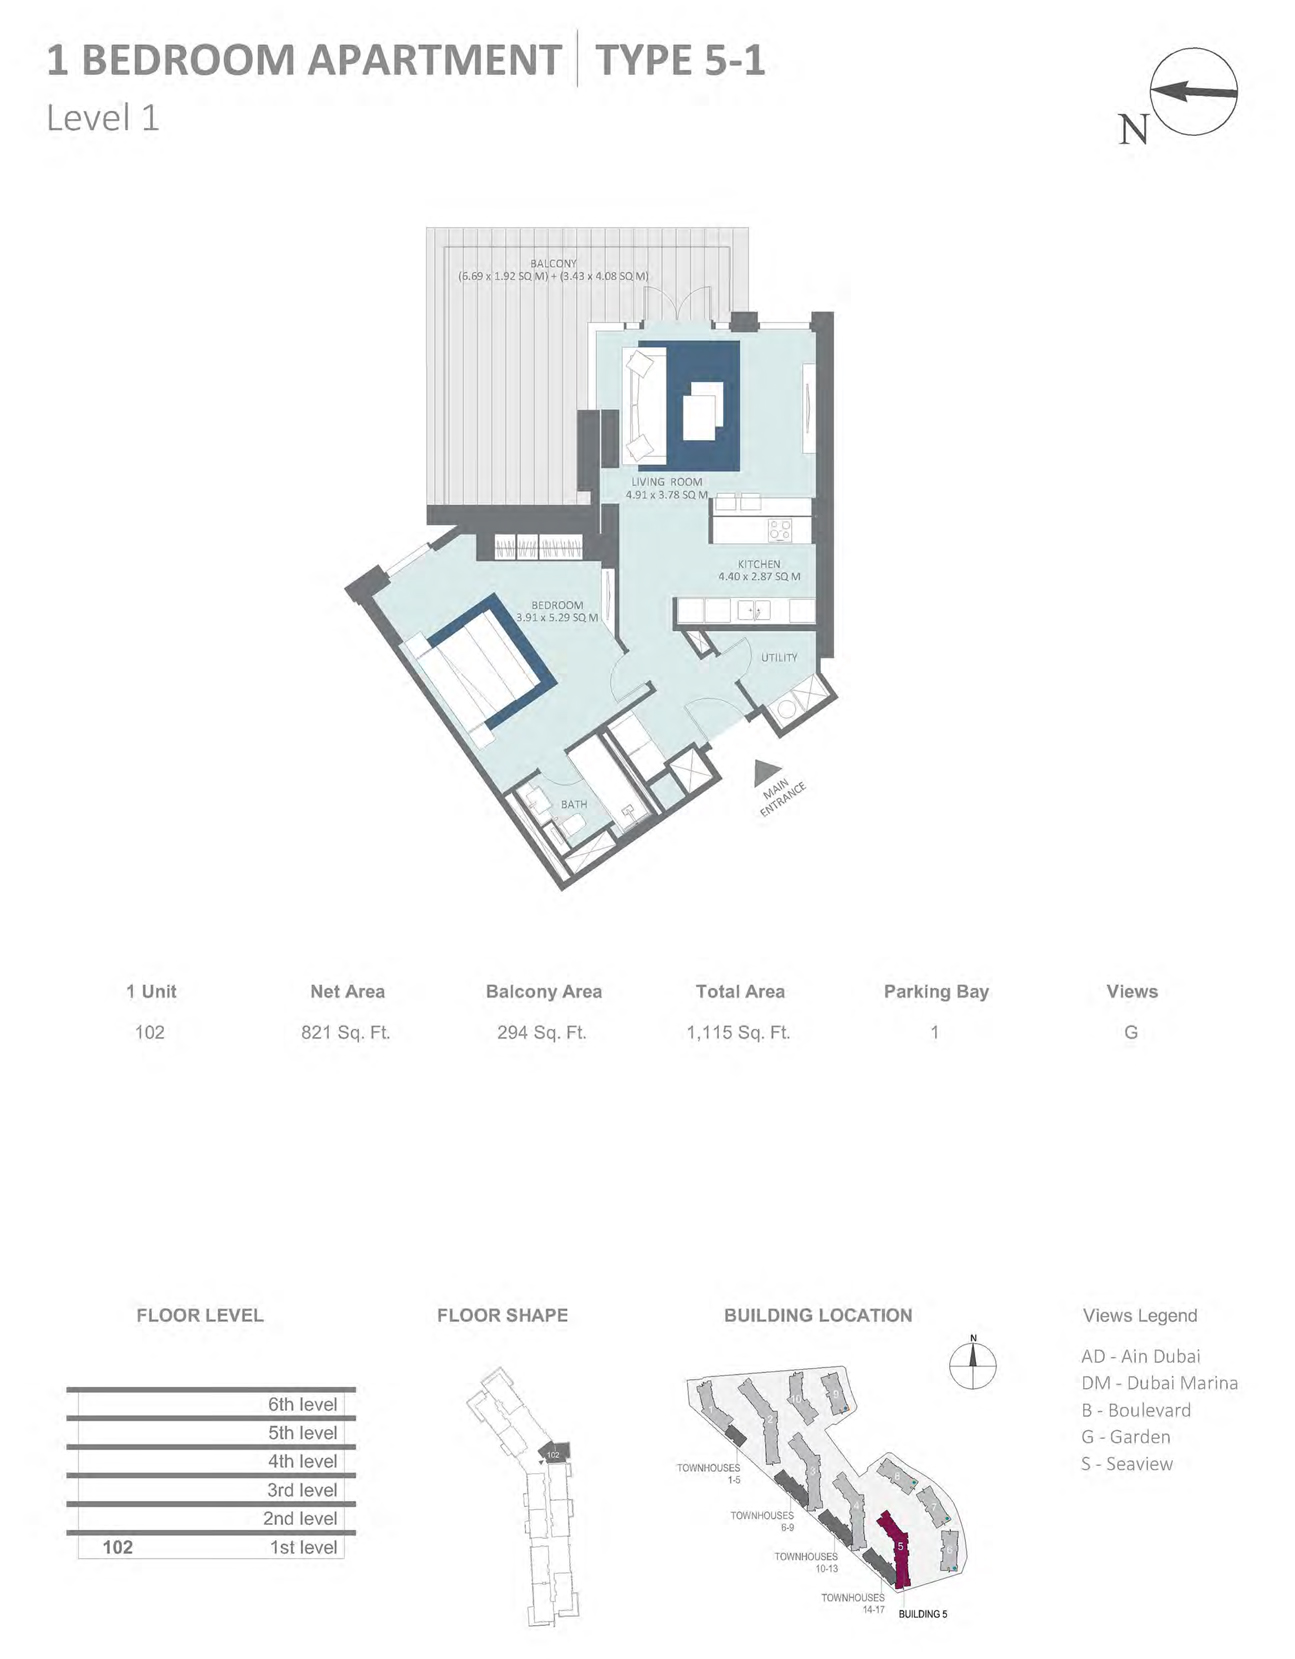 Building 5 - 1 Bedroom Type 5-1 Level 1 , Size 821    sq. ft.